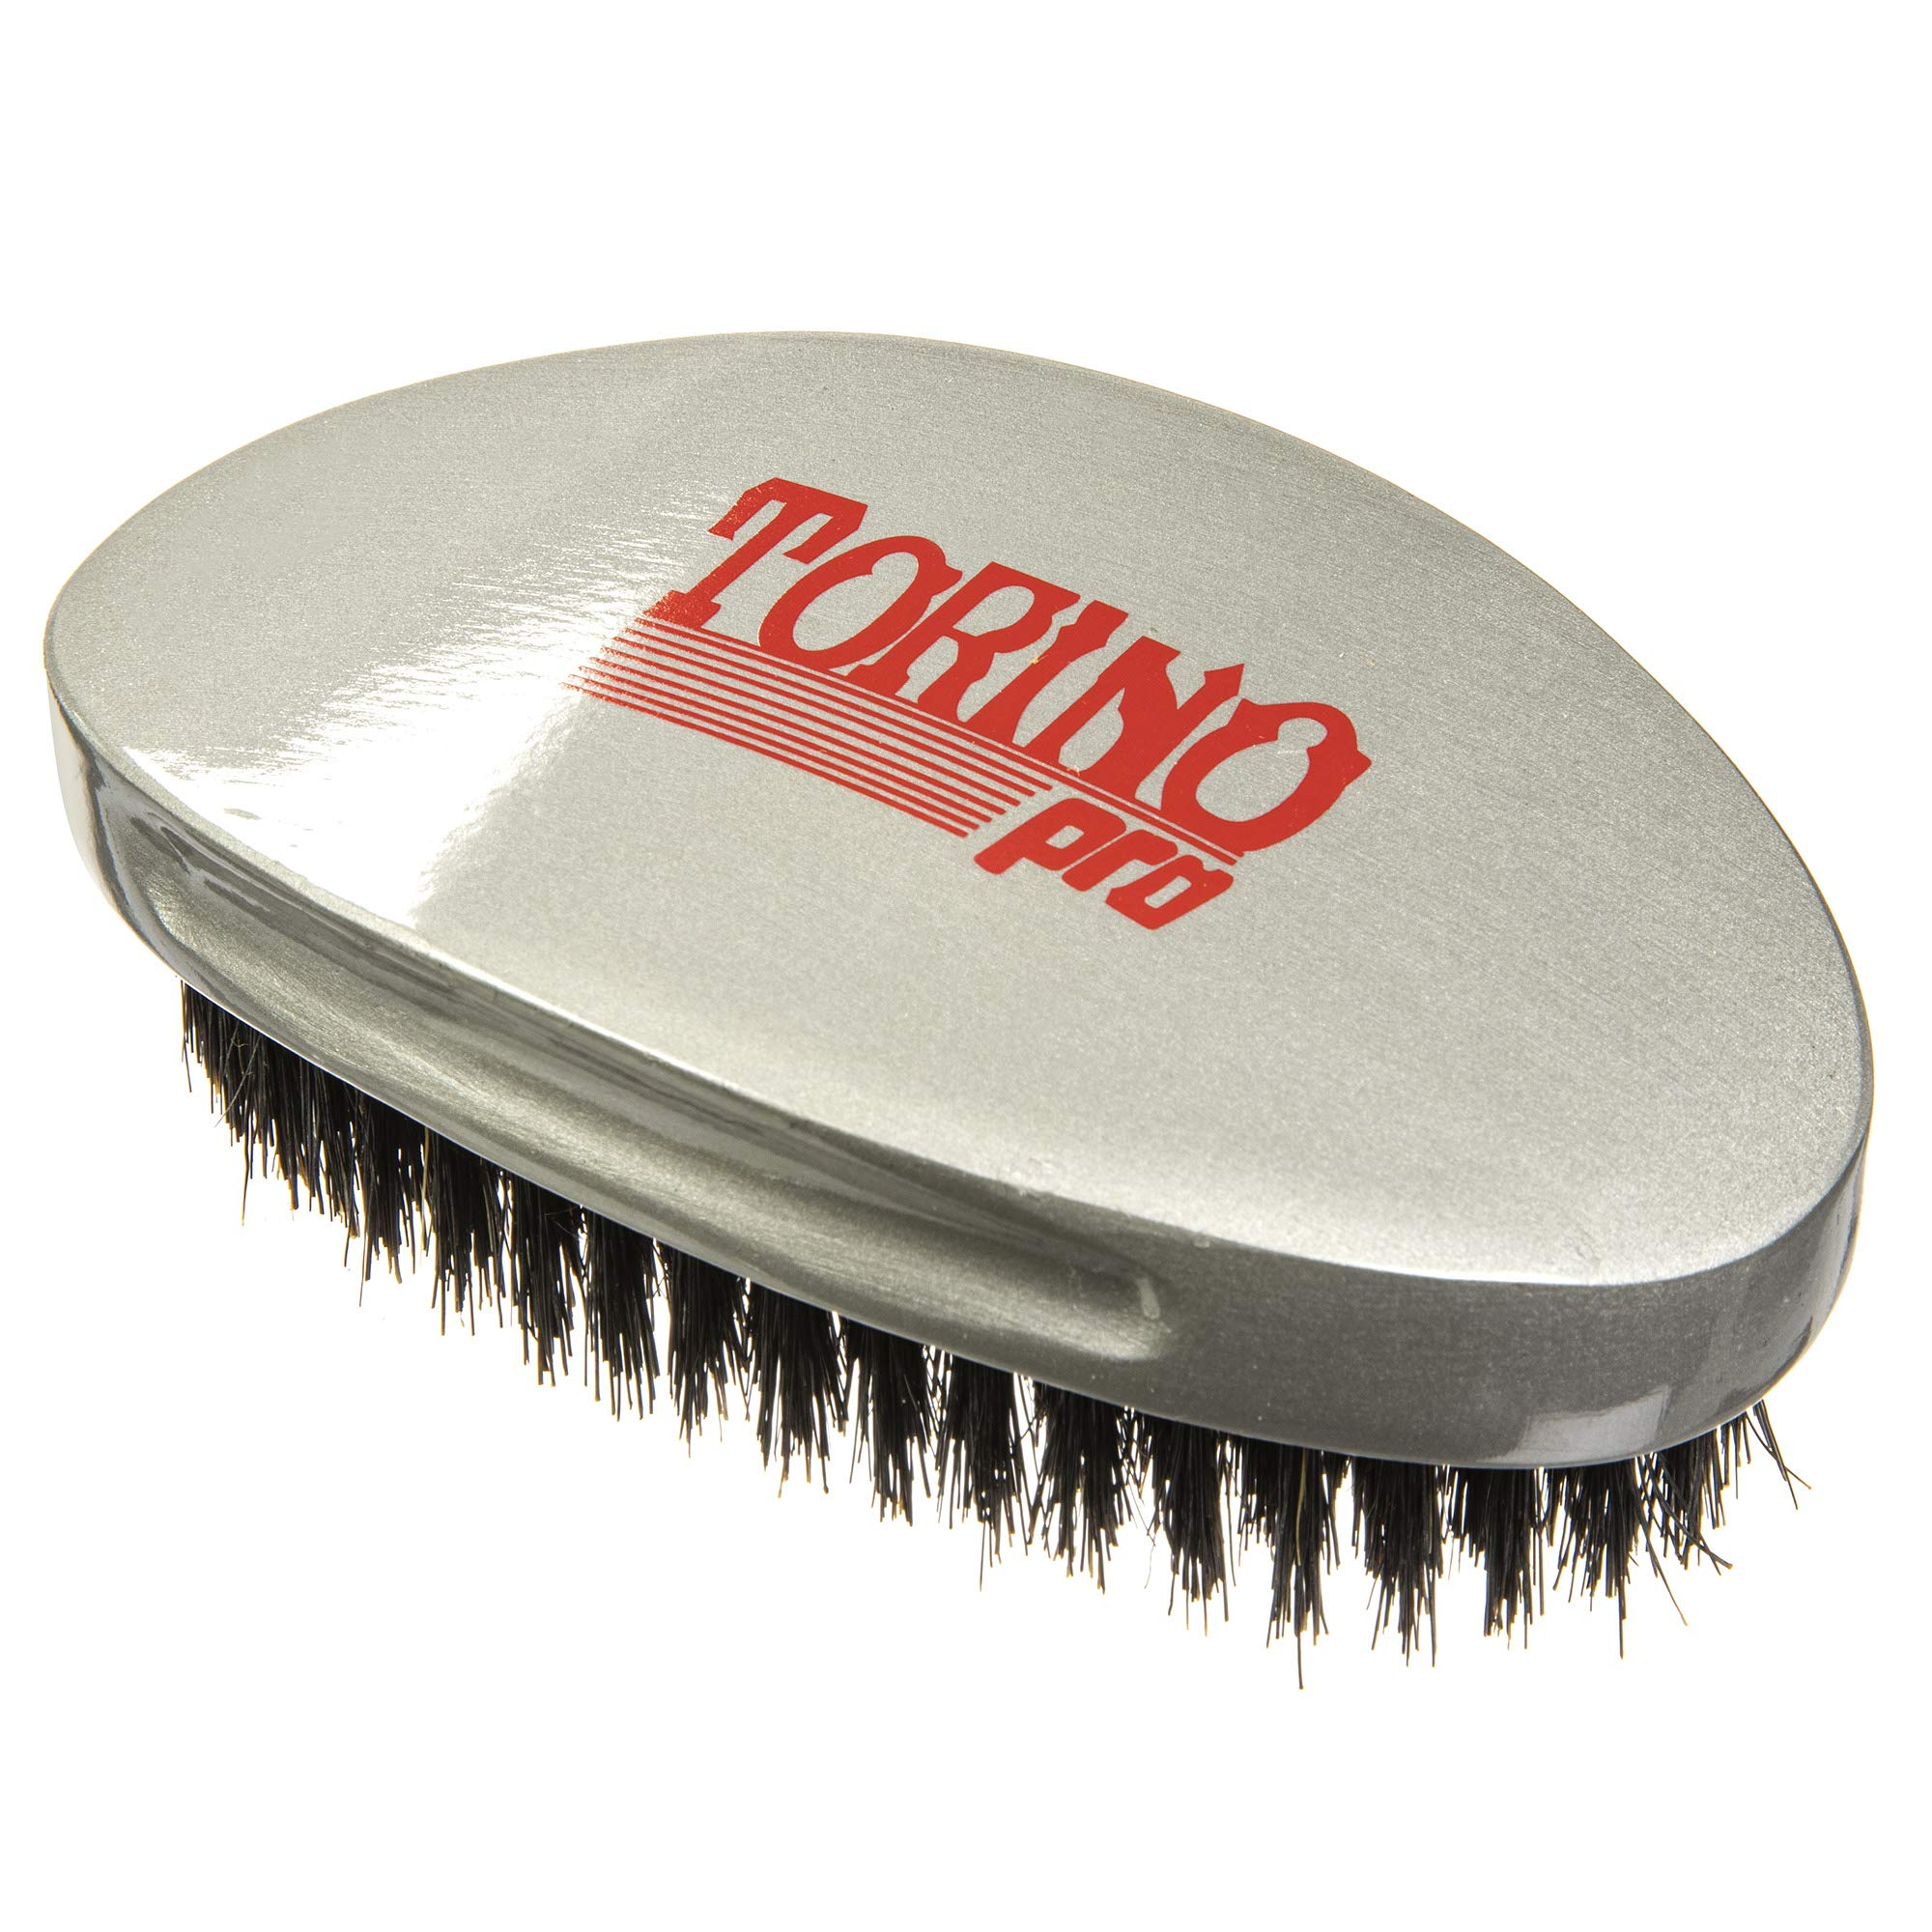 Torino Pro Medium Wave Brush #530 By Brush King - Curve Palm Wave Brush - Made with 100% Boar Bristles -True Texture Medium - All Purpose 360 Waves Curved Brush